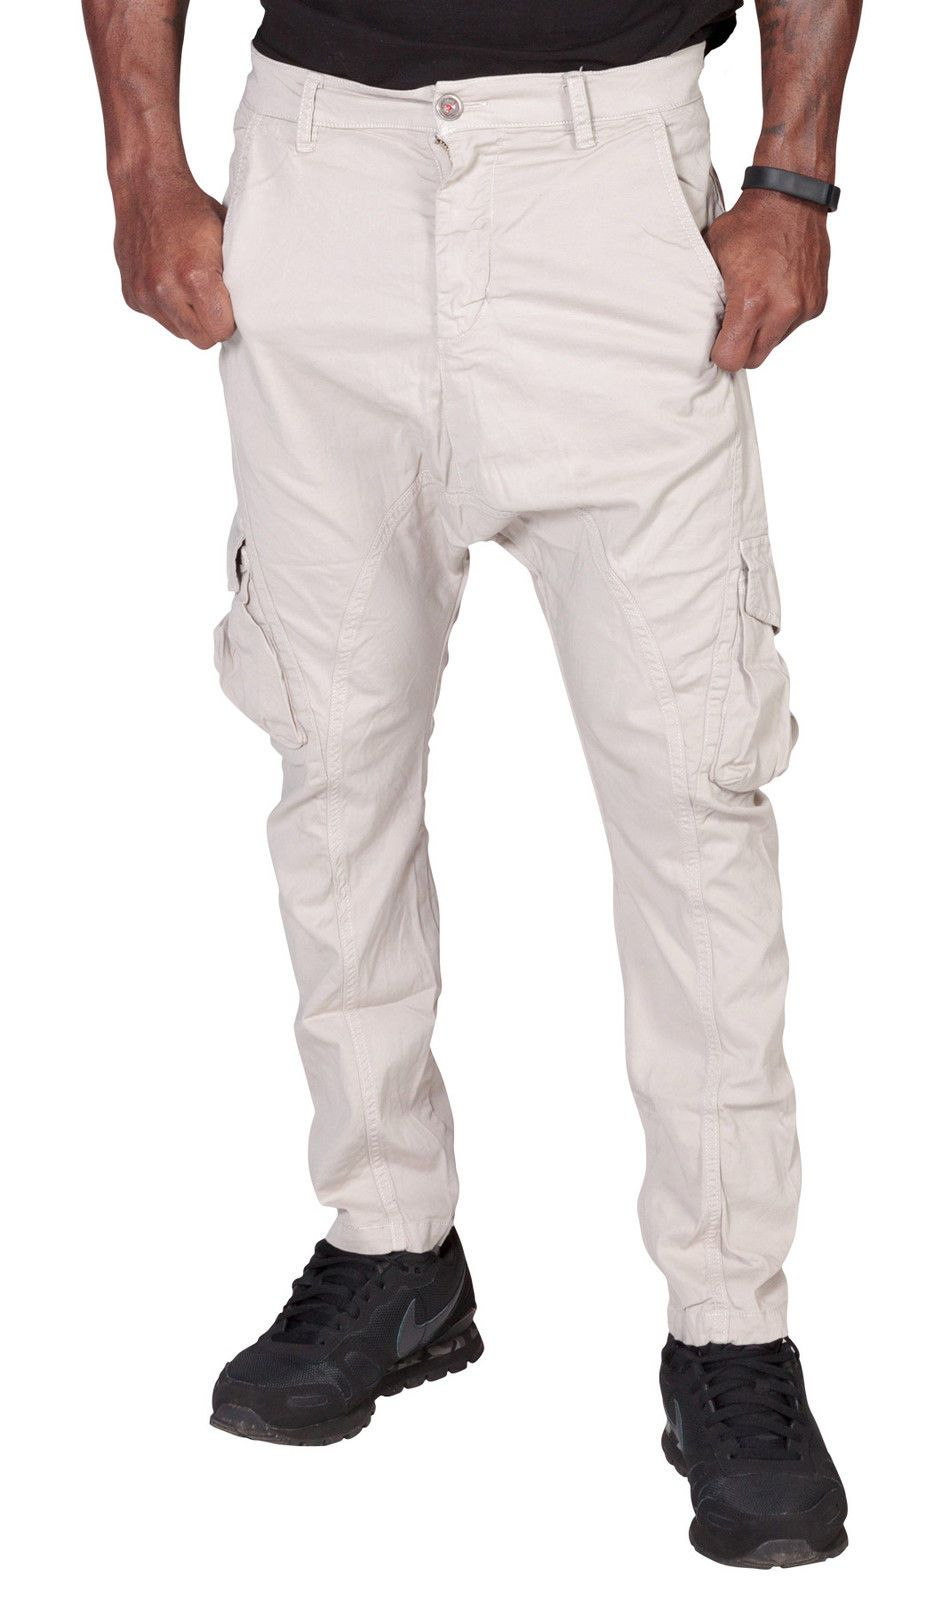 Close-up frontal of 'Finley' style, casual cotton mix cargo trousers in stone, with view of front pockets, belt loops and drop crotch styling.